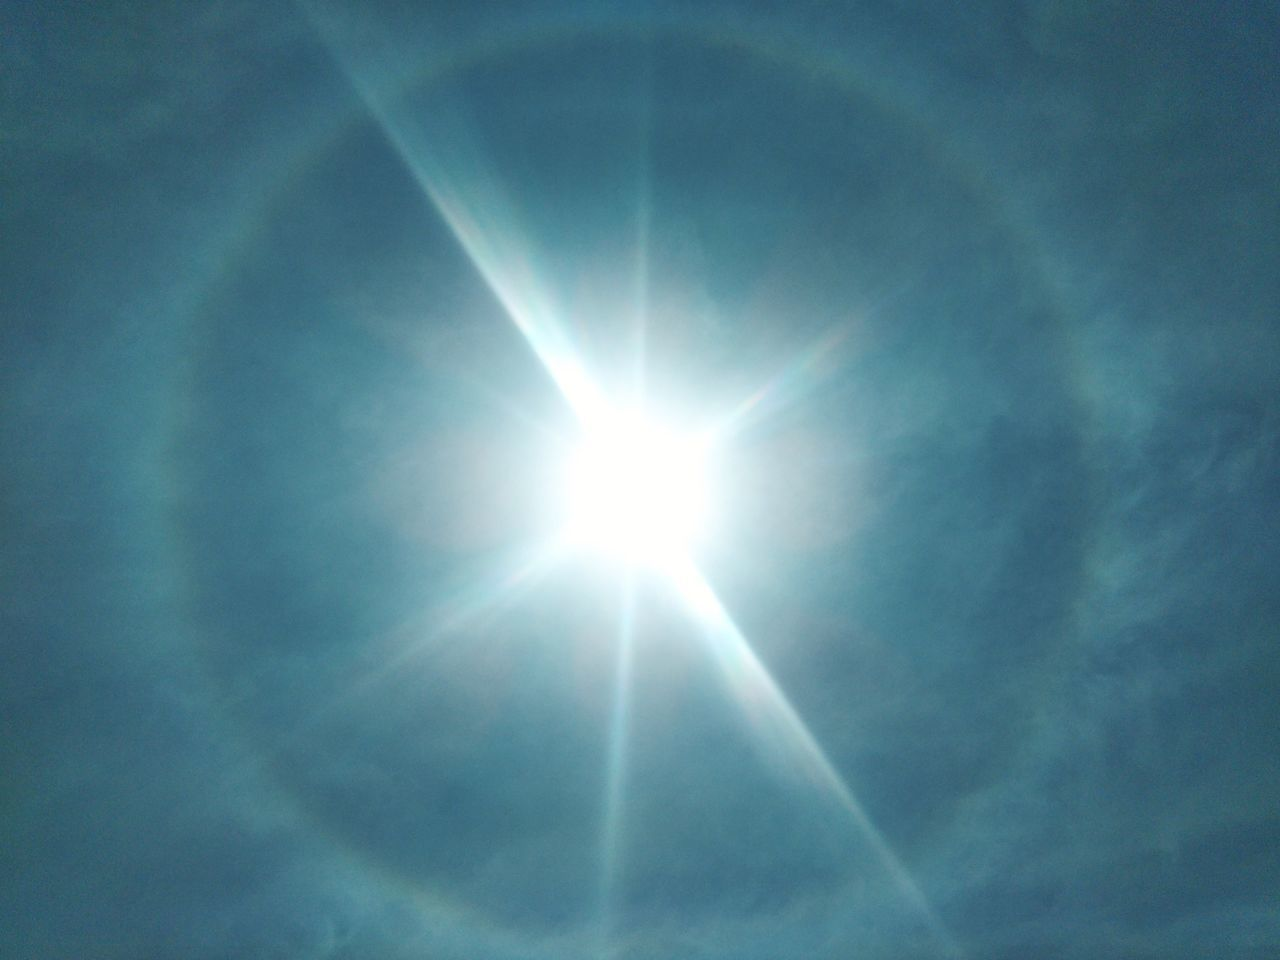 Sunbeam Sun No People Space Sunset Nature Summer Technology Natural Phenomenon Solar Eclipse Halo Astronomy Sky Refraction Futuristic Nature Outdoors Day Galaxy Ring Halo Overhead